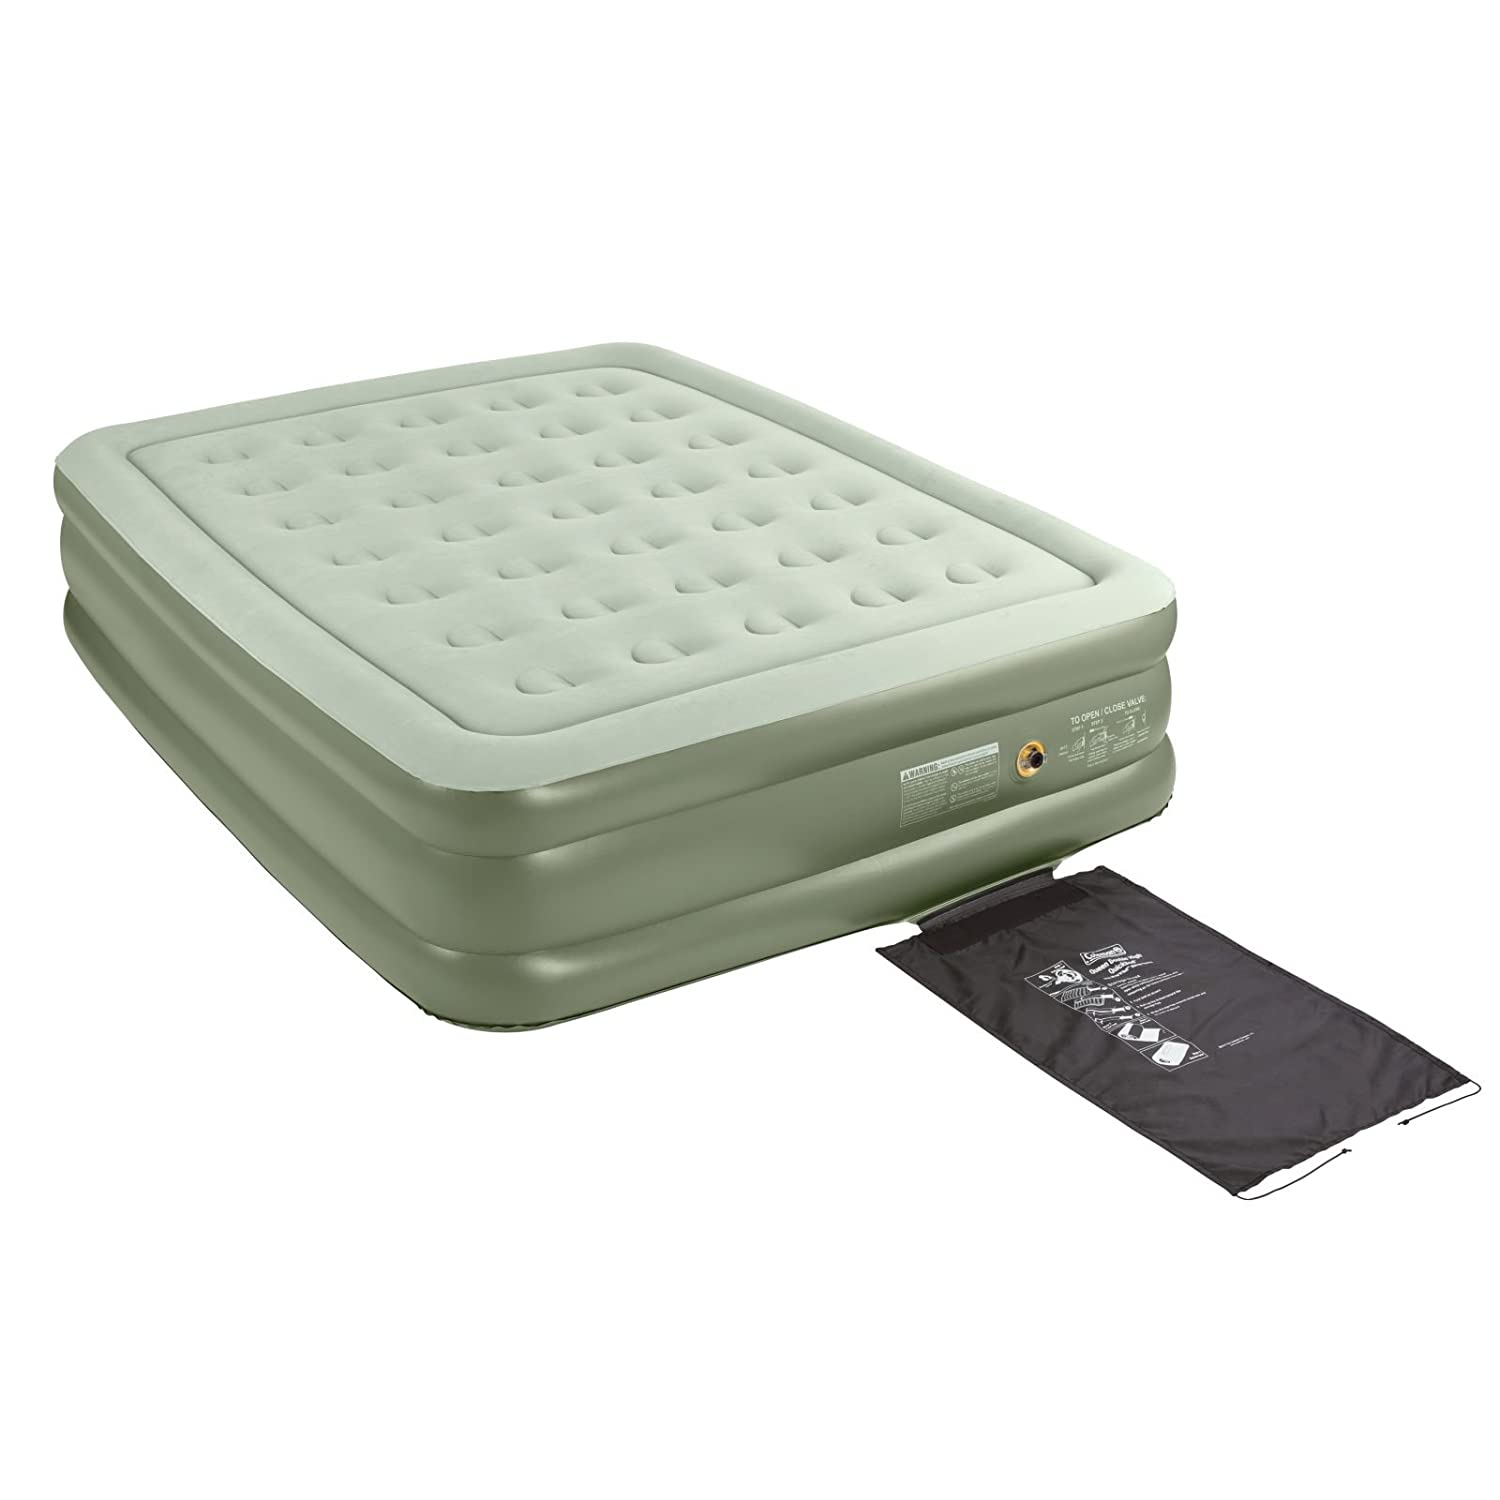 Amazon.com : Coleman Double-High SupportRest, Queen : Camping Air Mattresses  : Sports & Outdoors